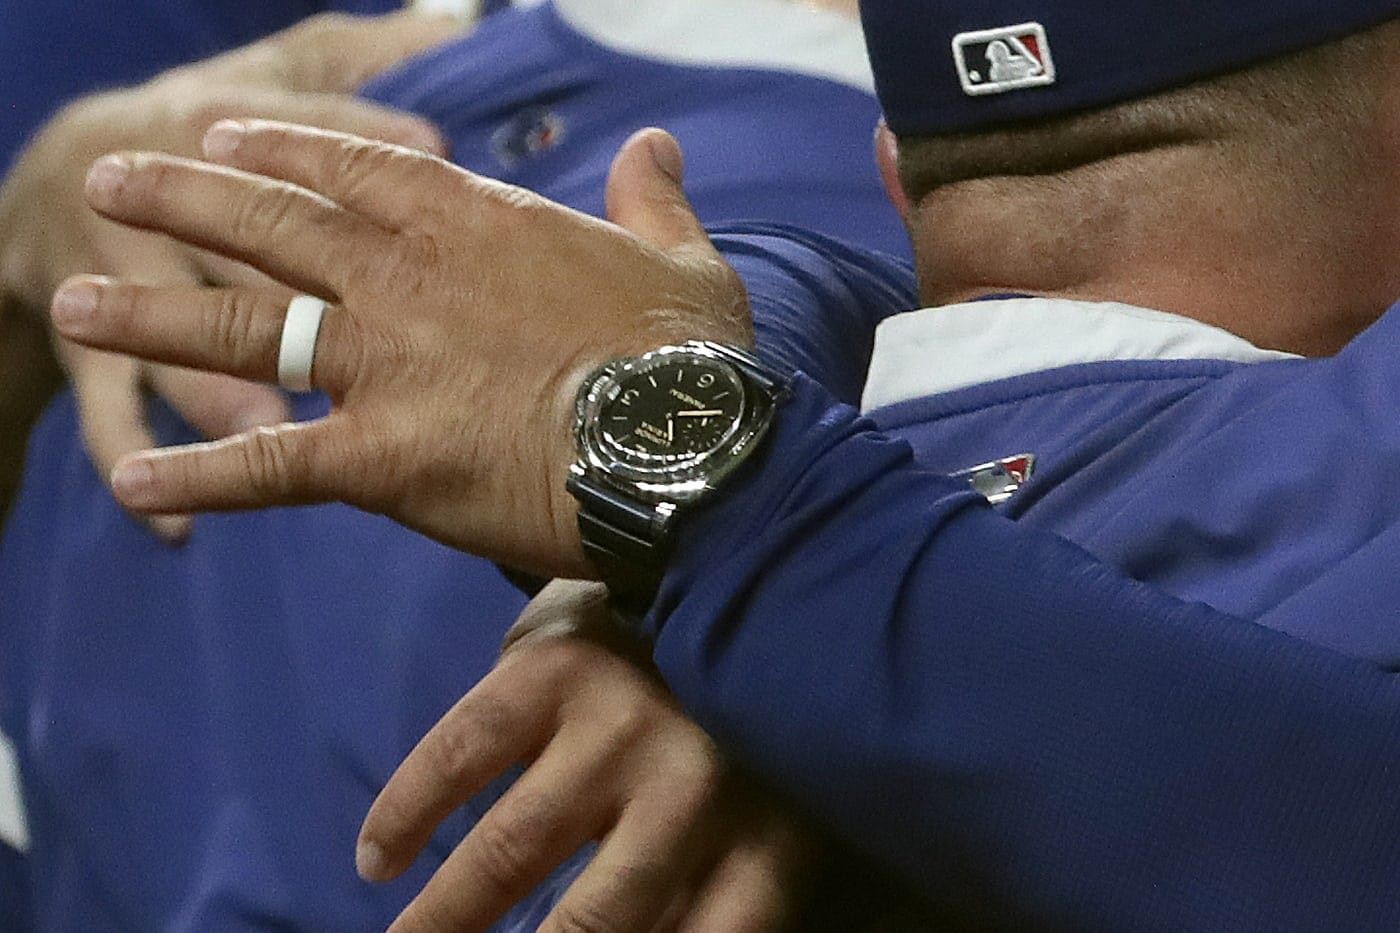 Watch Spotting: Manager Dave Roberts Wearing A Panerai Luminor Marina As The Los Angeles Dodgers Win The 2020 World Series